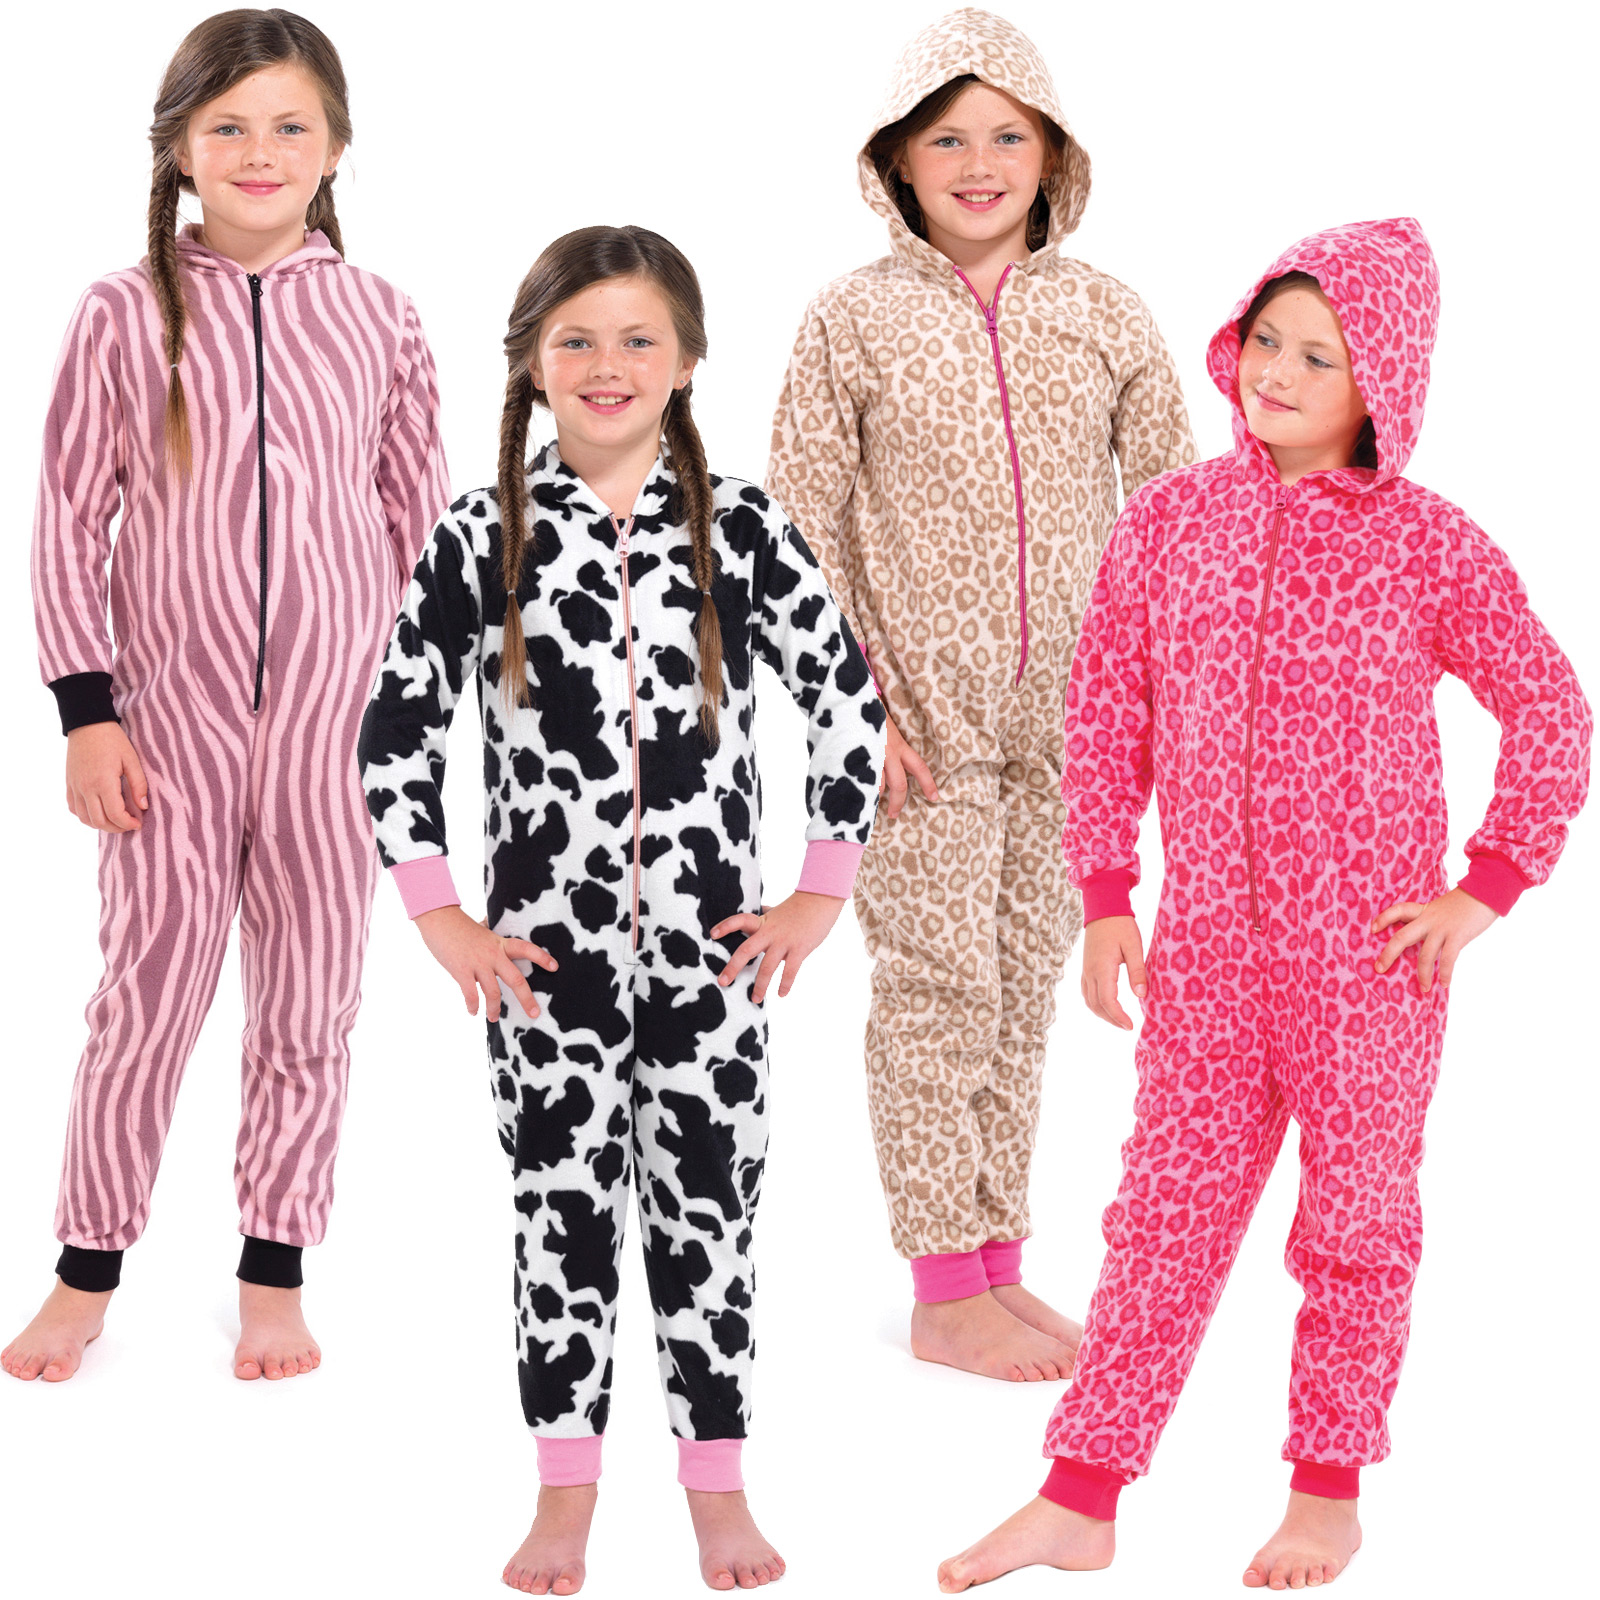 custifara.ga factory directly offer Kids & Children Boys Girls Babies Kigurumi Onesie Pajamas! Great for pajamas party and cosplay show. pretty boys and girls must be adorable and cute in it!